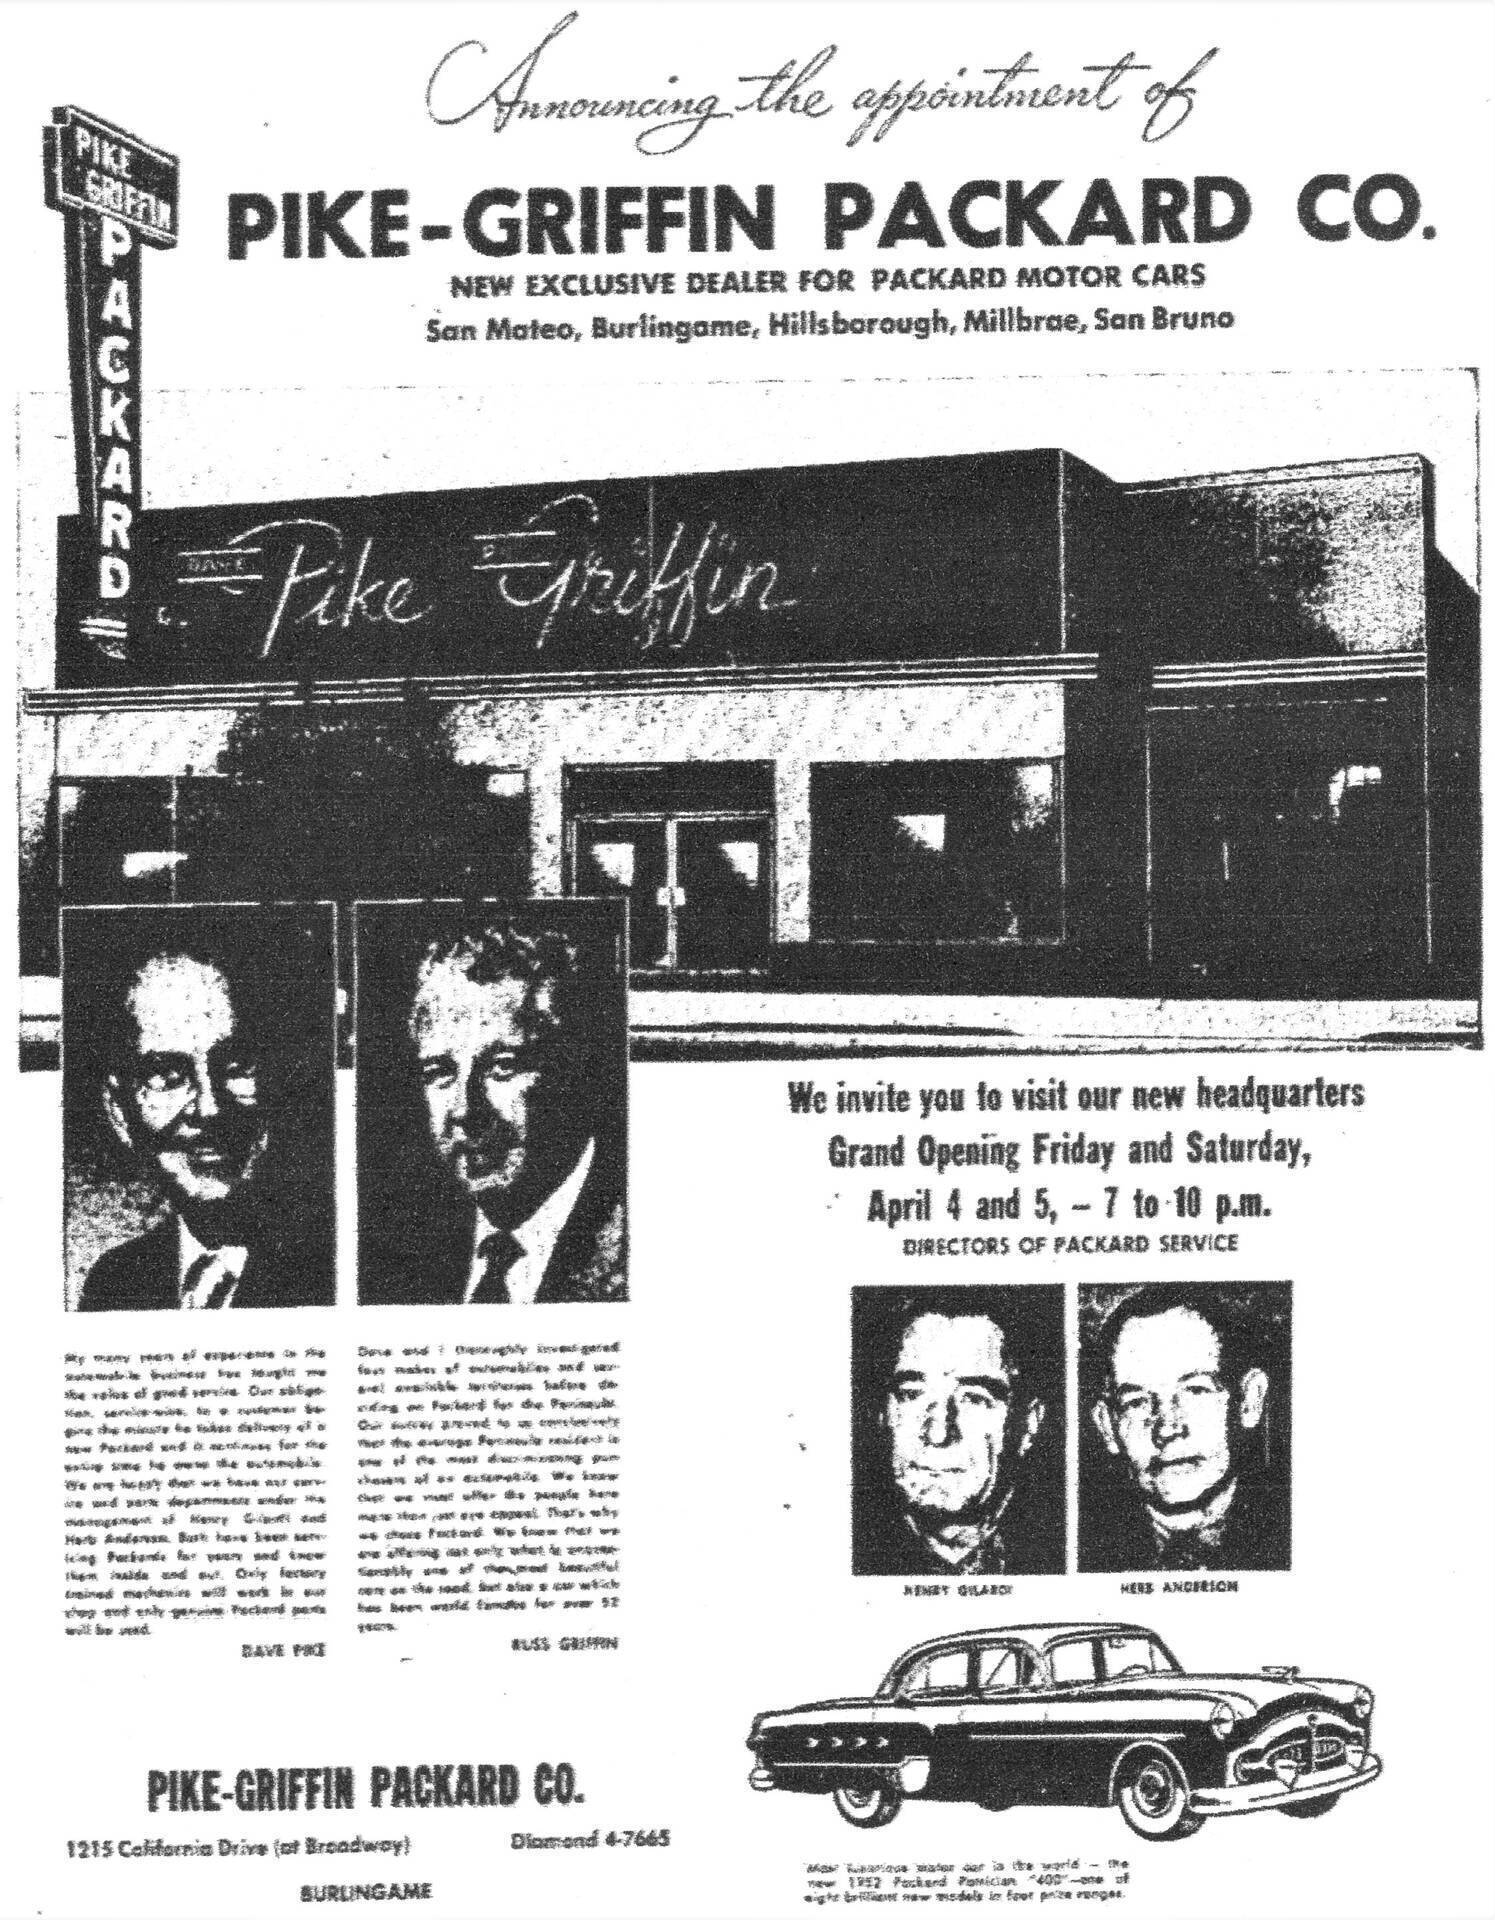 Pike-Griffin Packard Co.